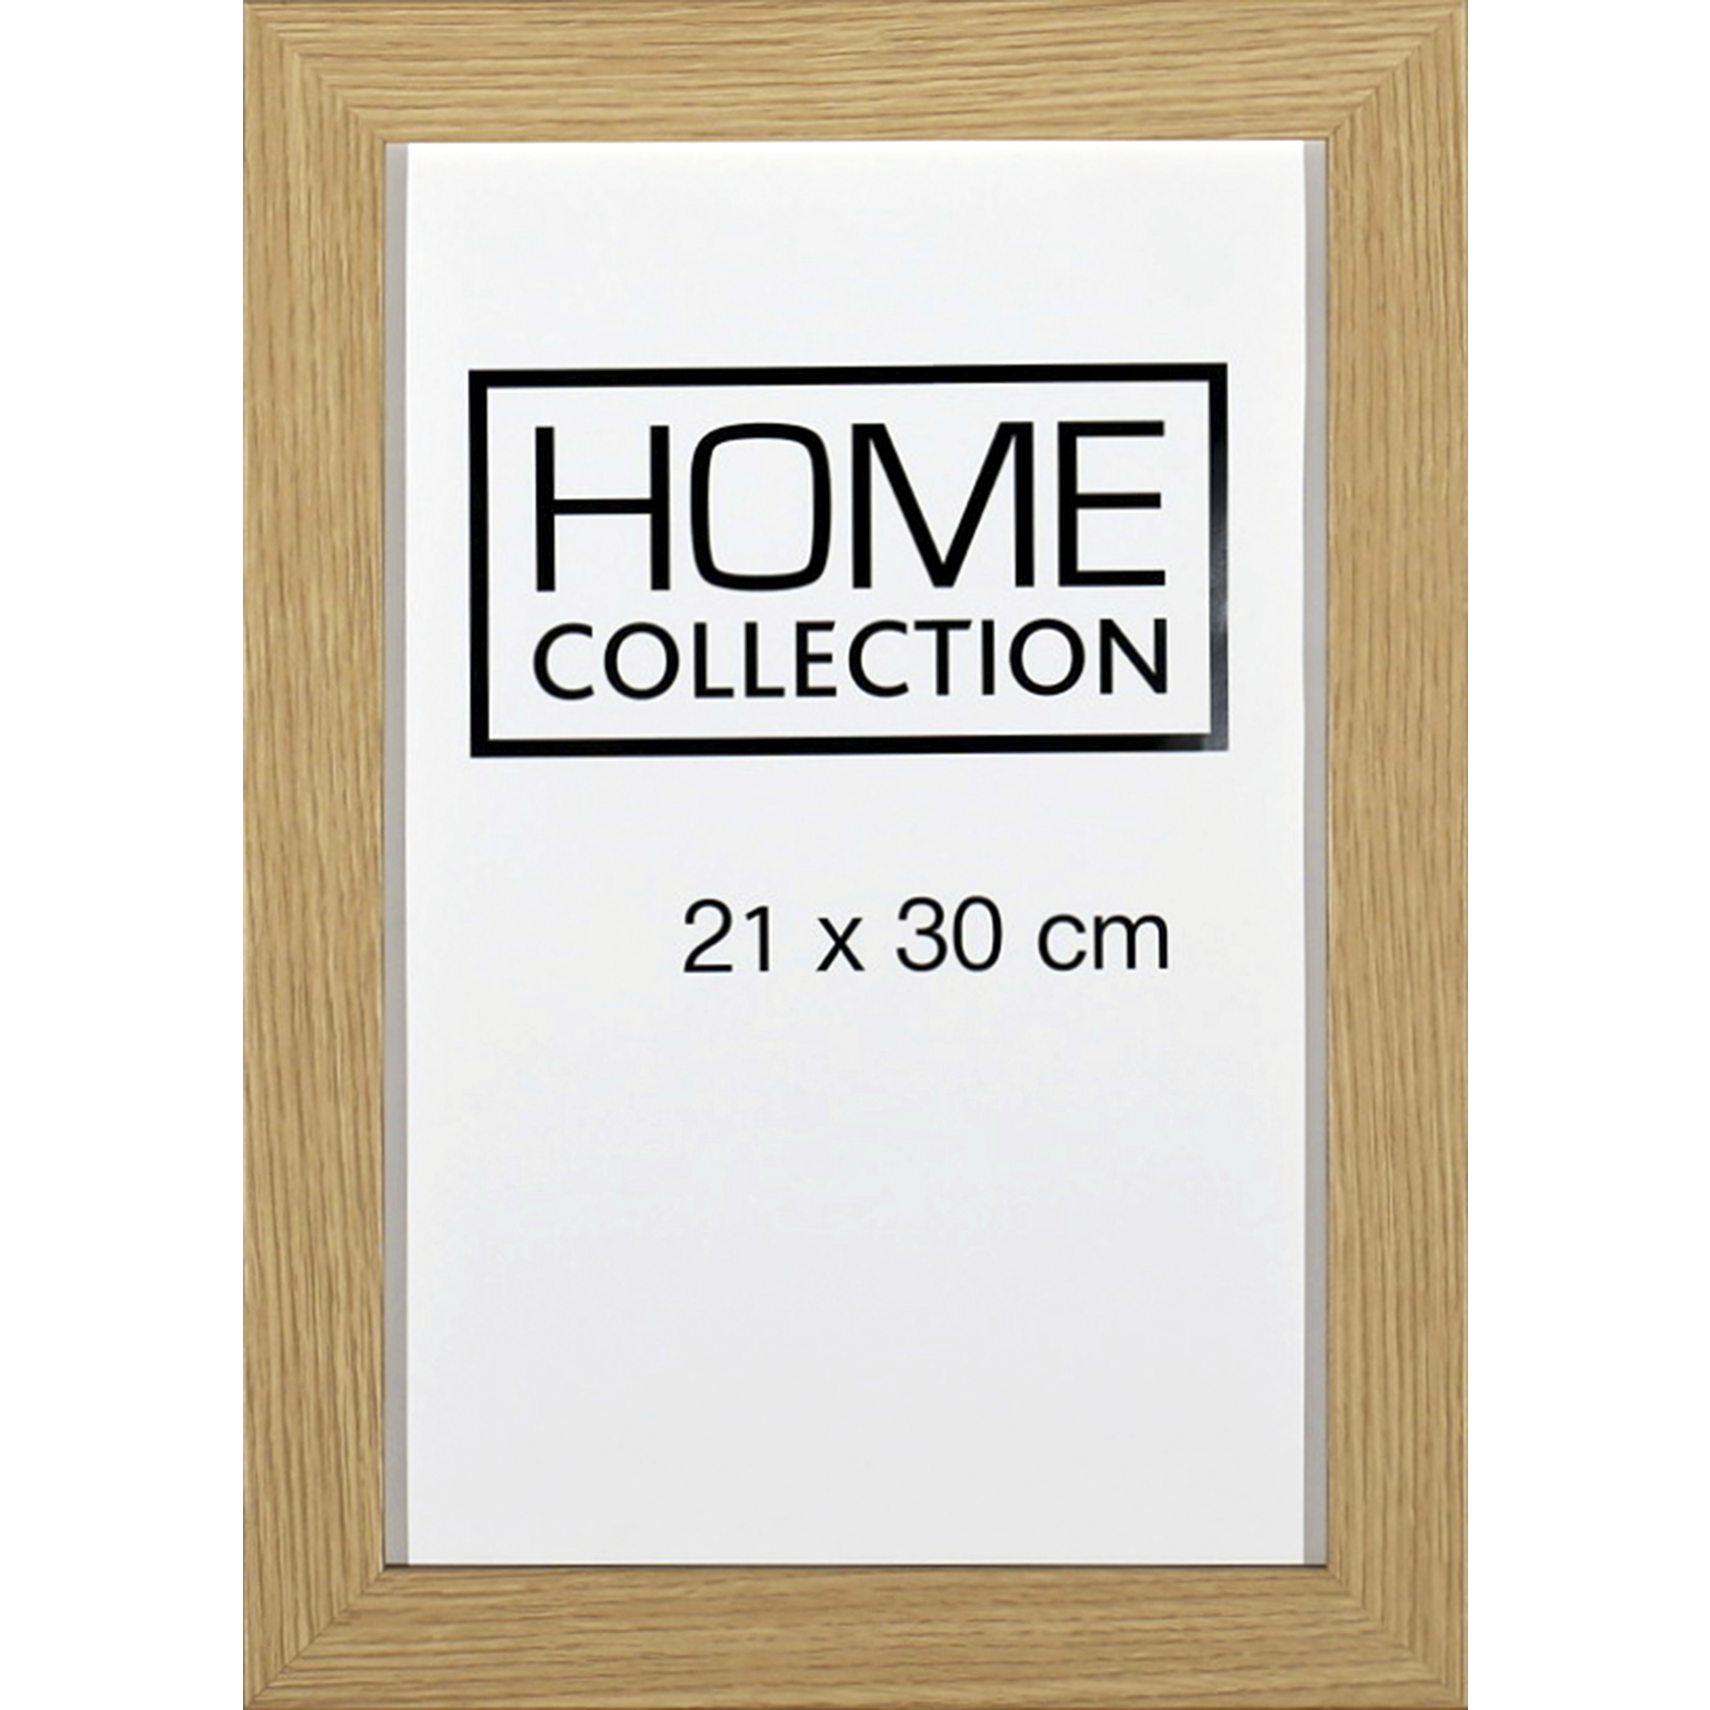 HOME COLLECTION Ram 21 x 30 x 1 cm - Ram i ekträ